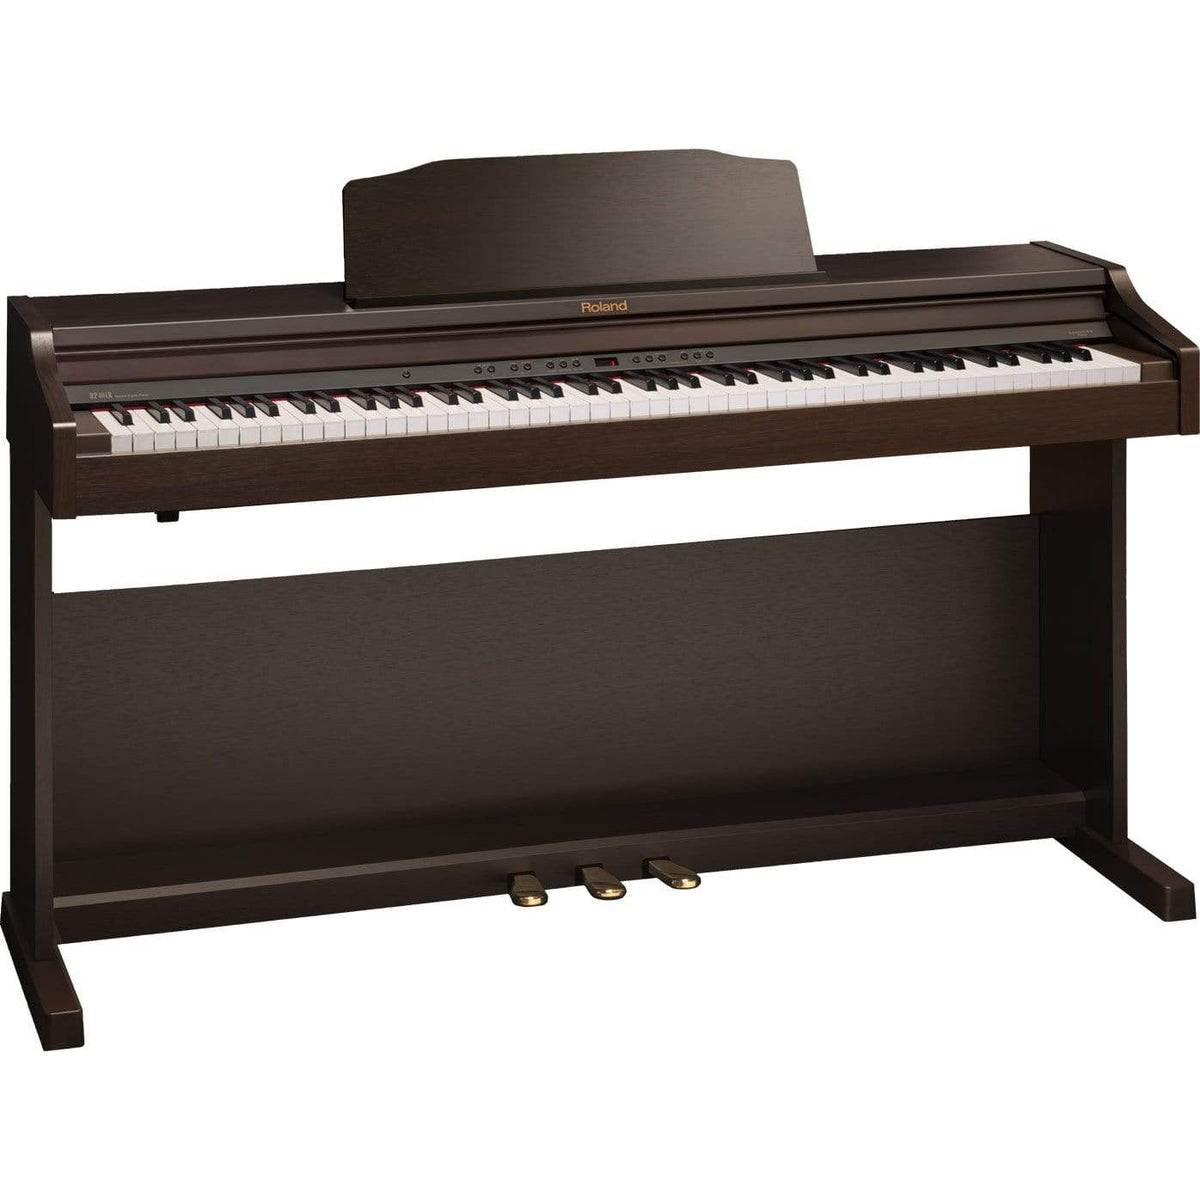 Roland RP-401R Digital Piano - Rosewood